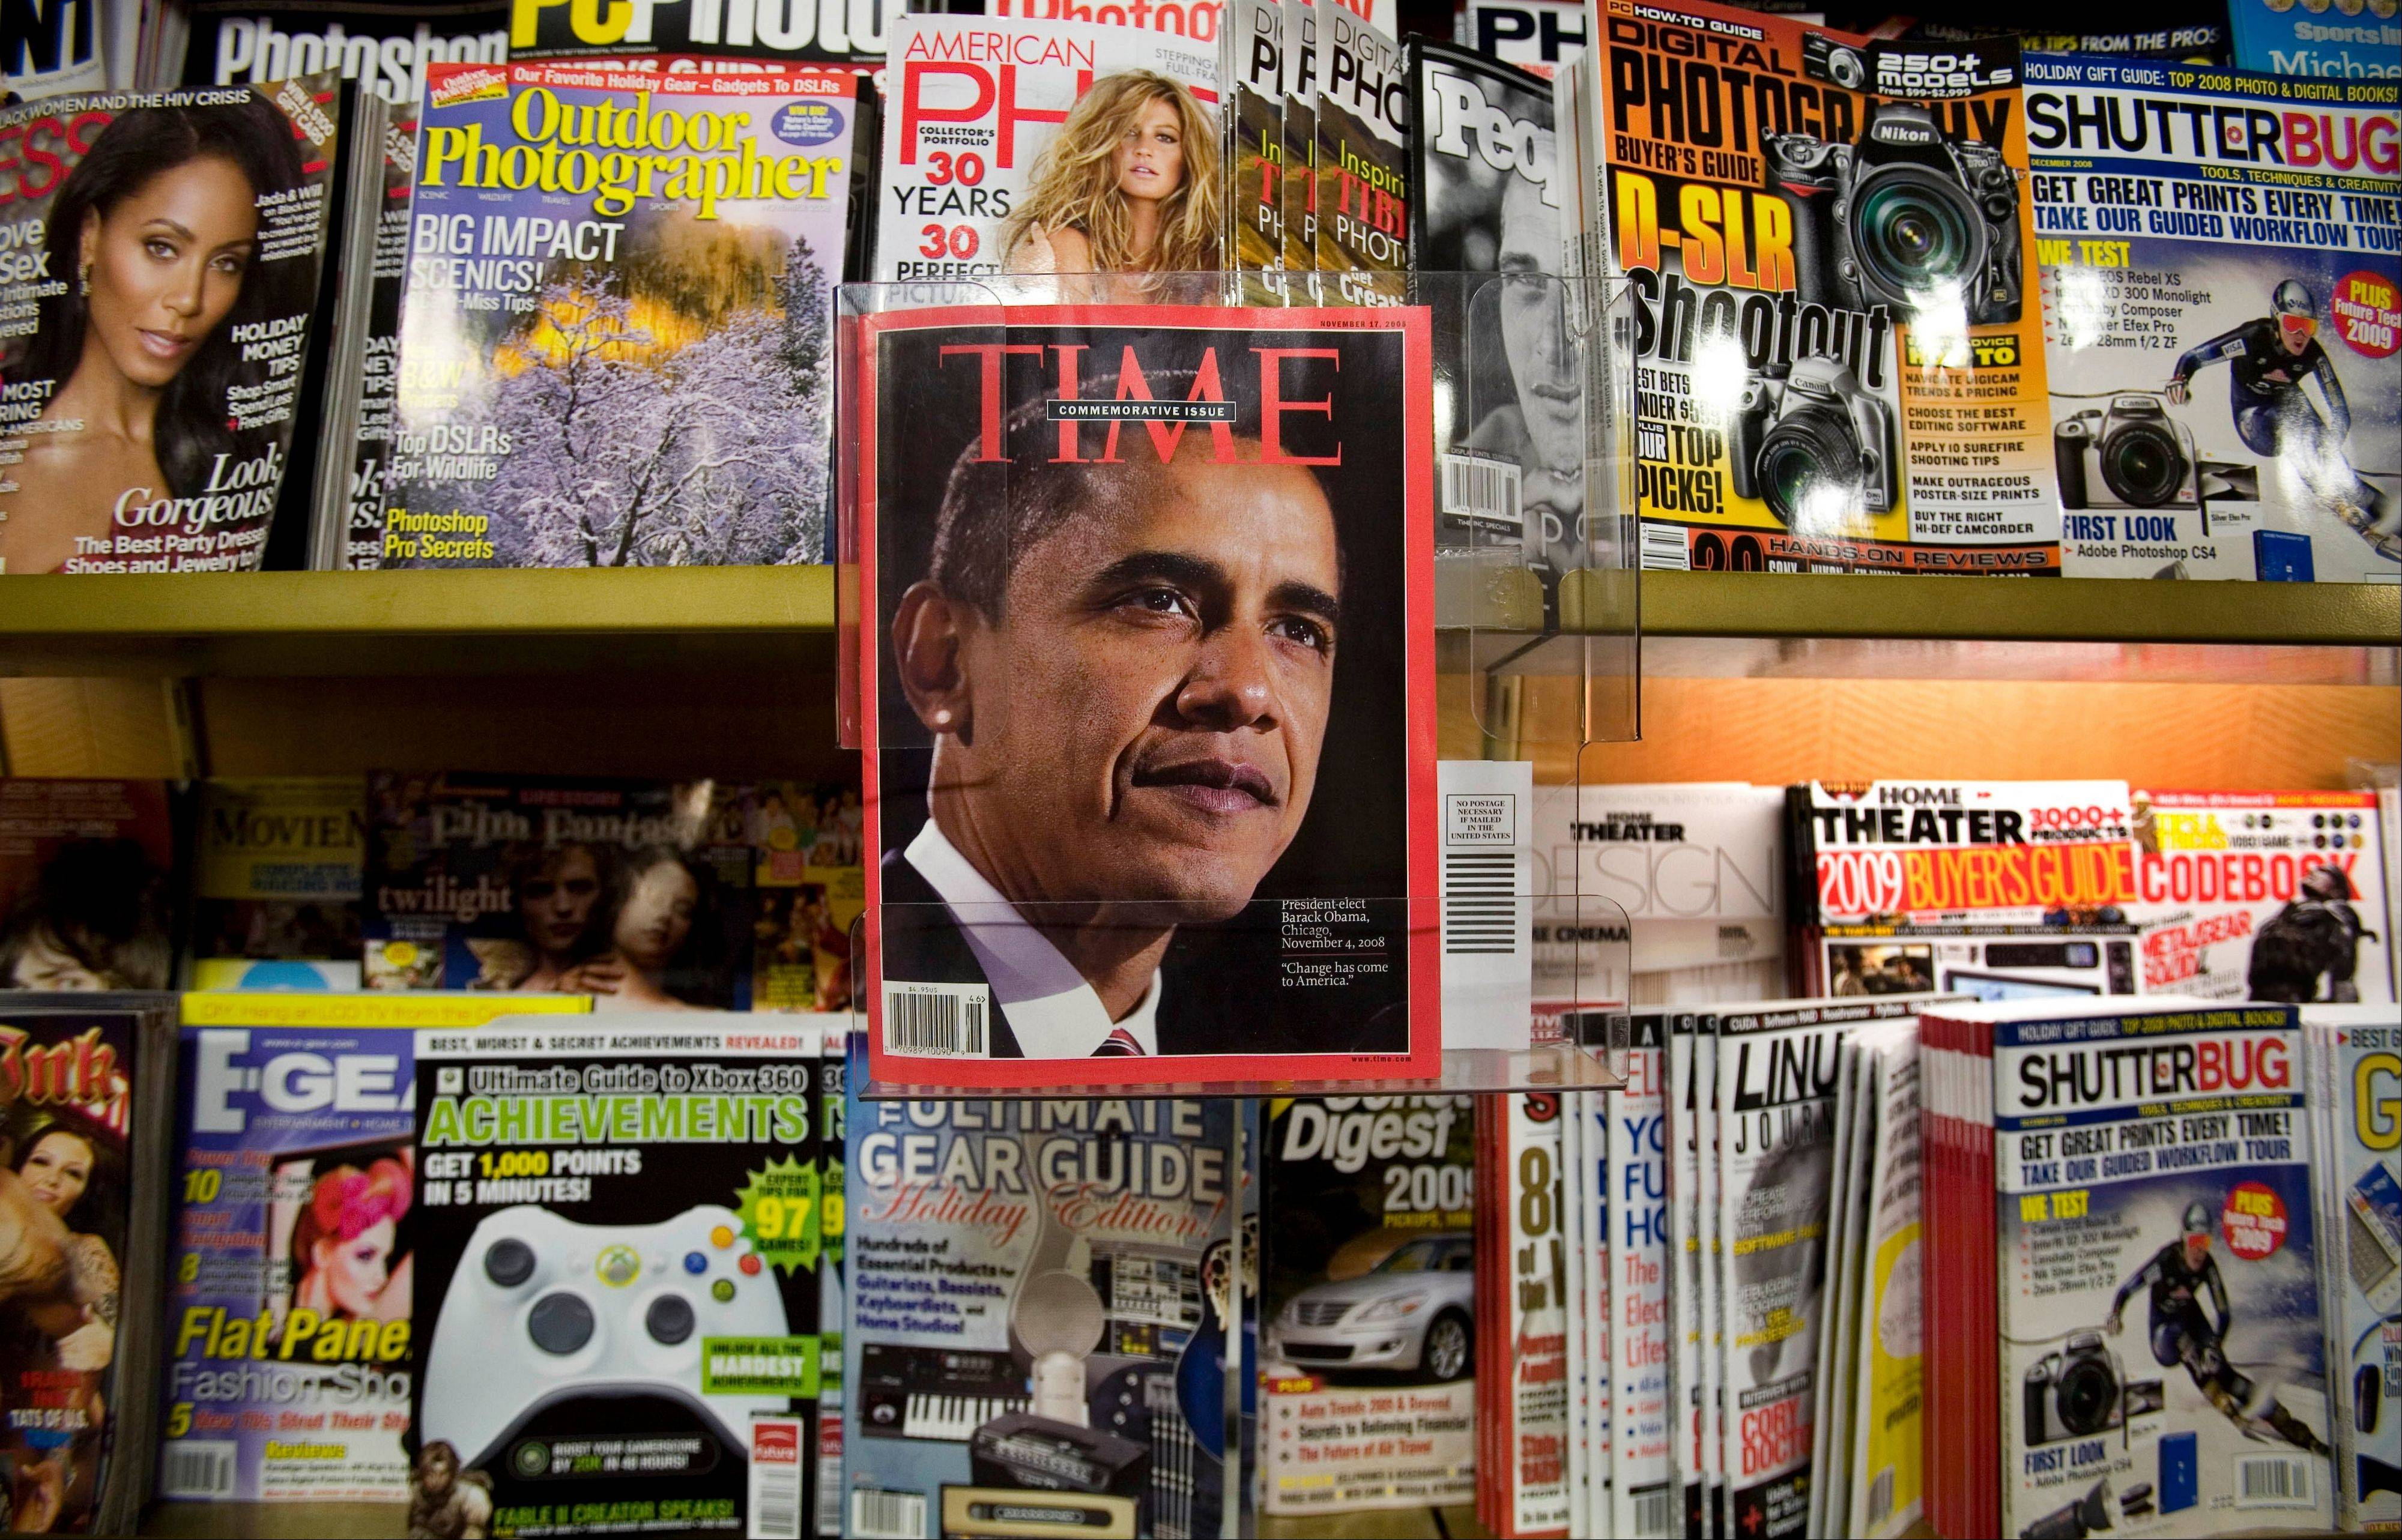 Time Warner Inc. on Wednesday said that it will spin off the magazine unit behind Time, Sports Illustrated and People into a separate, publicly traded company by the end of the year.